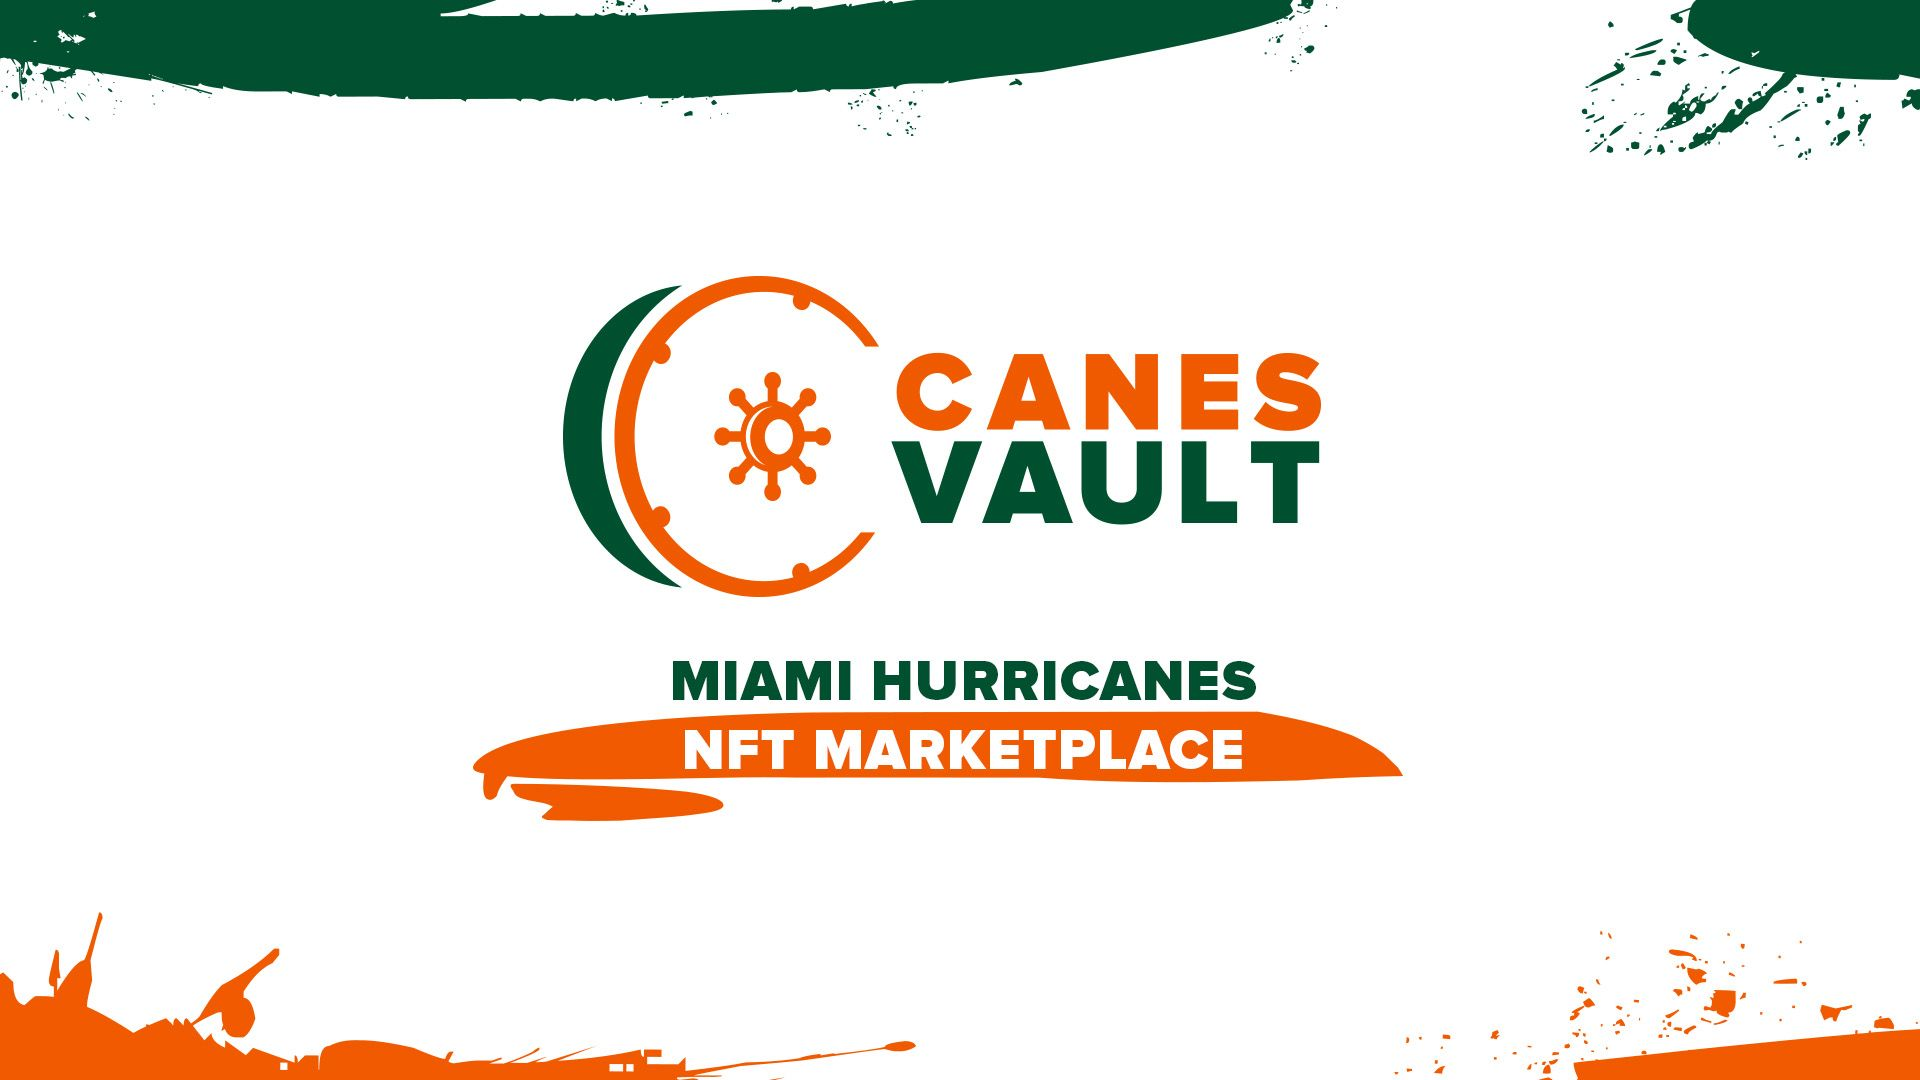 Miami Launches First-Of-Its-Kind NFT Platform 'Canes Vault'